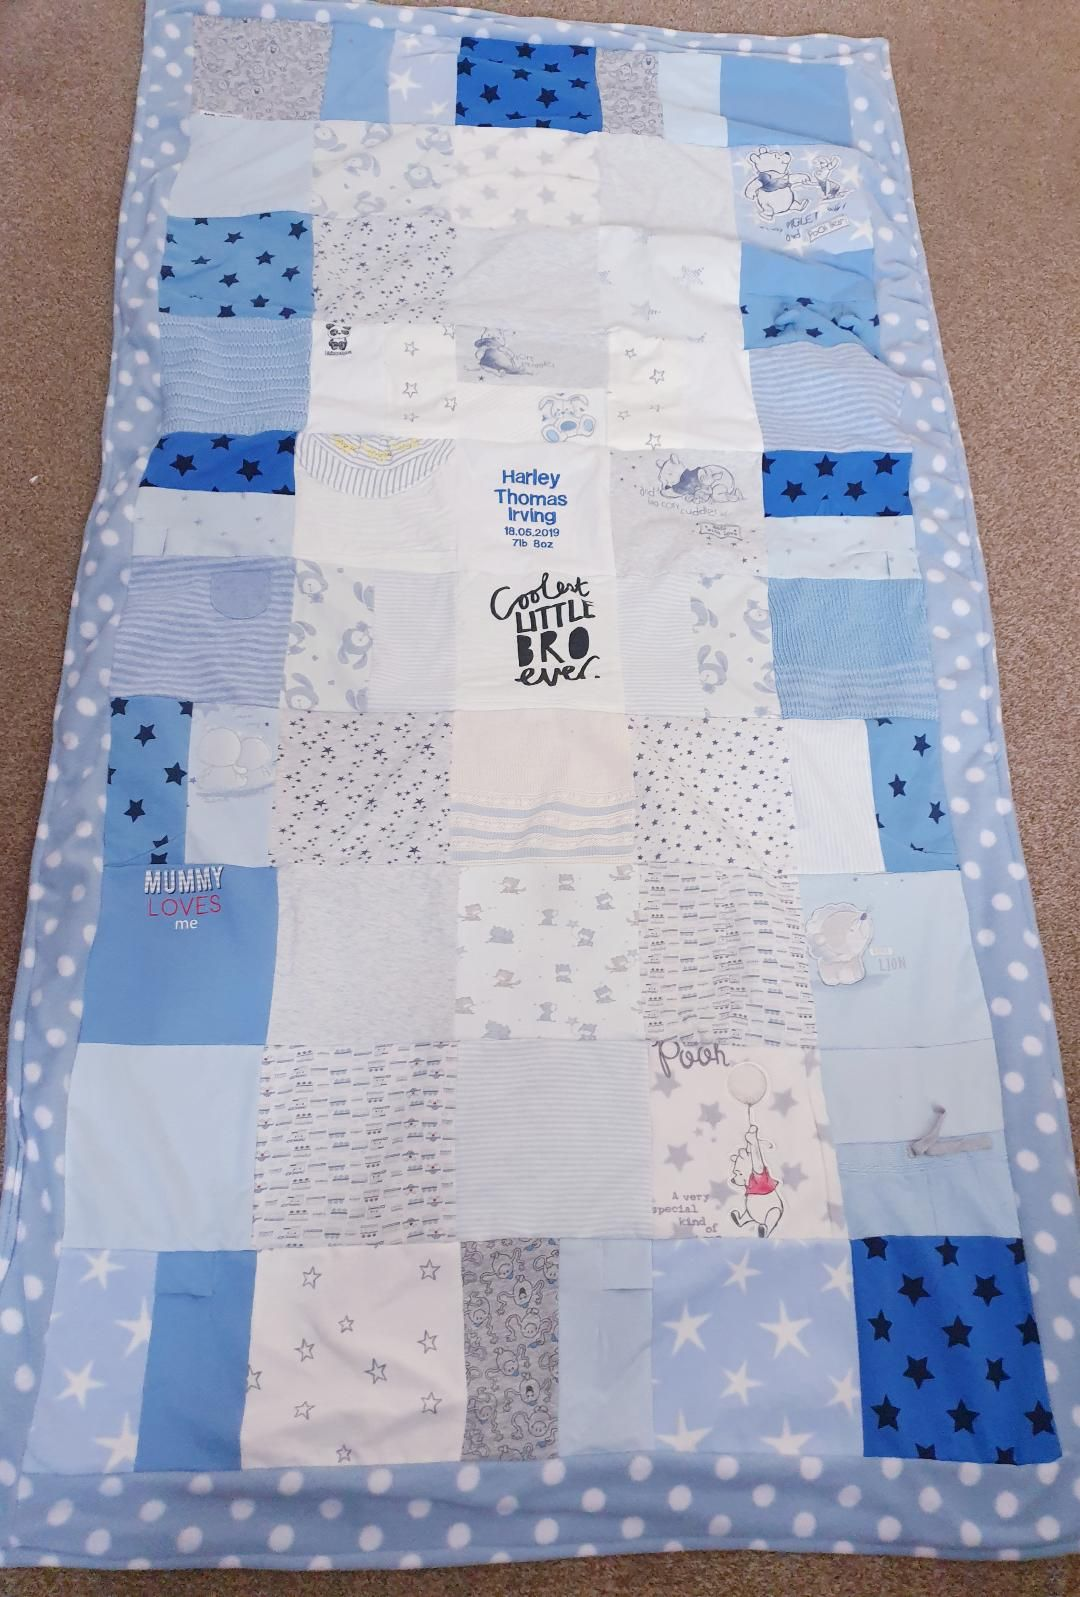 <!--001-->Memory blanket made from baby clothes